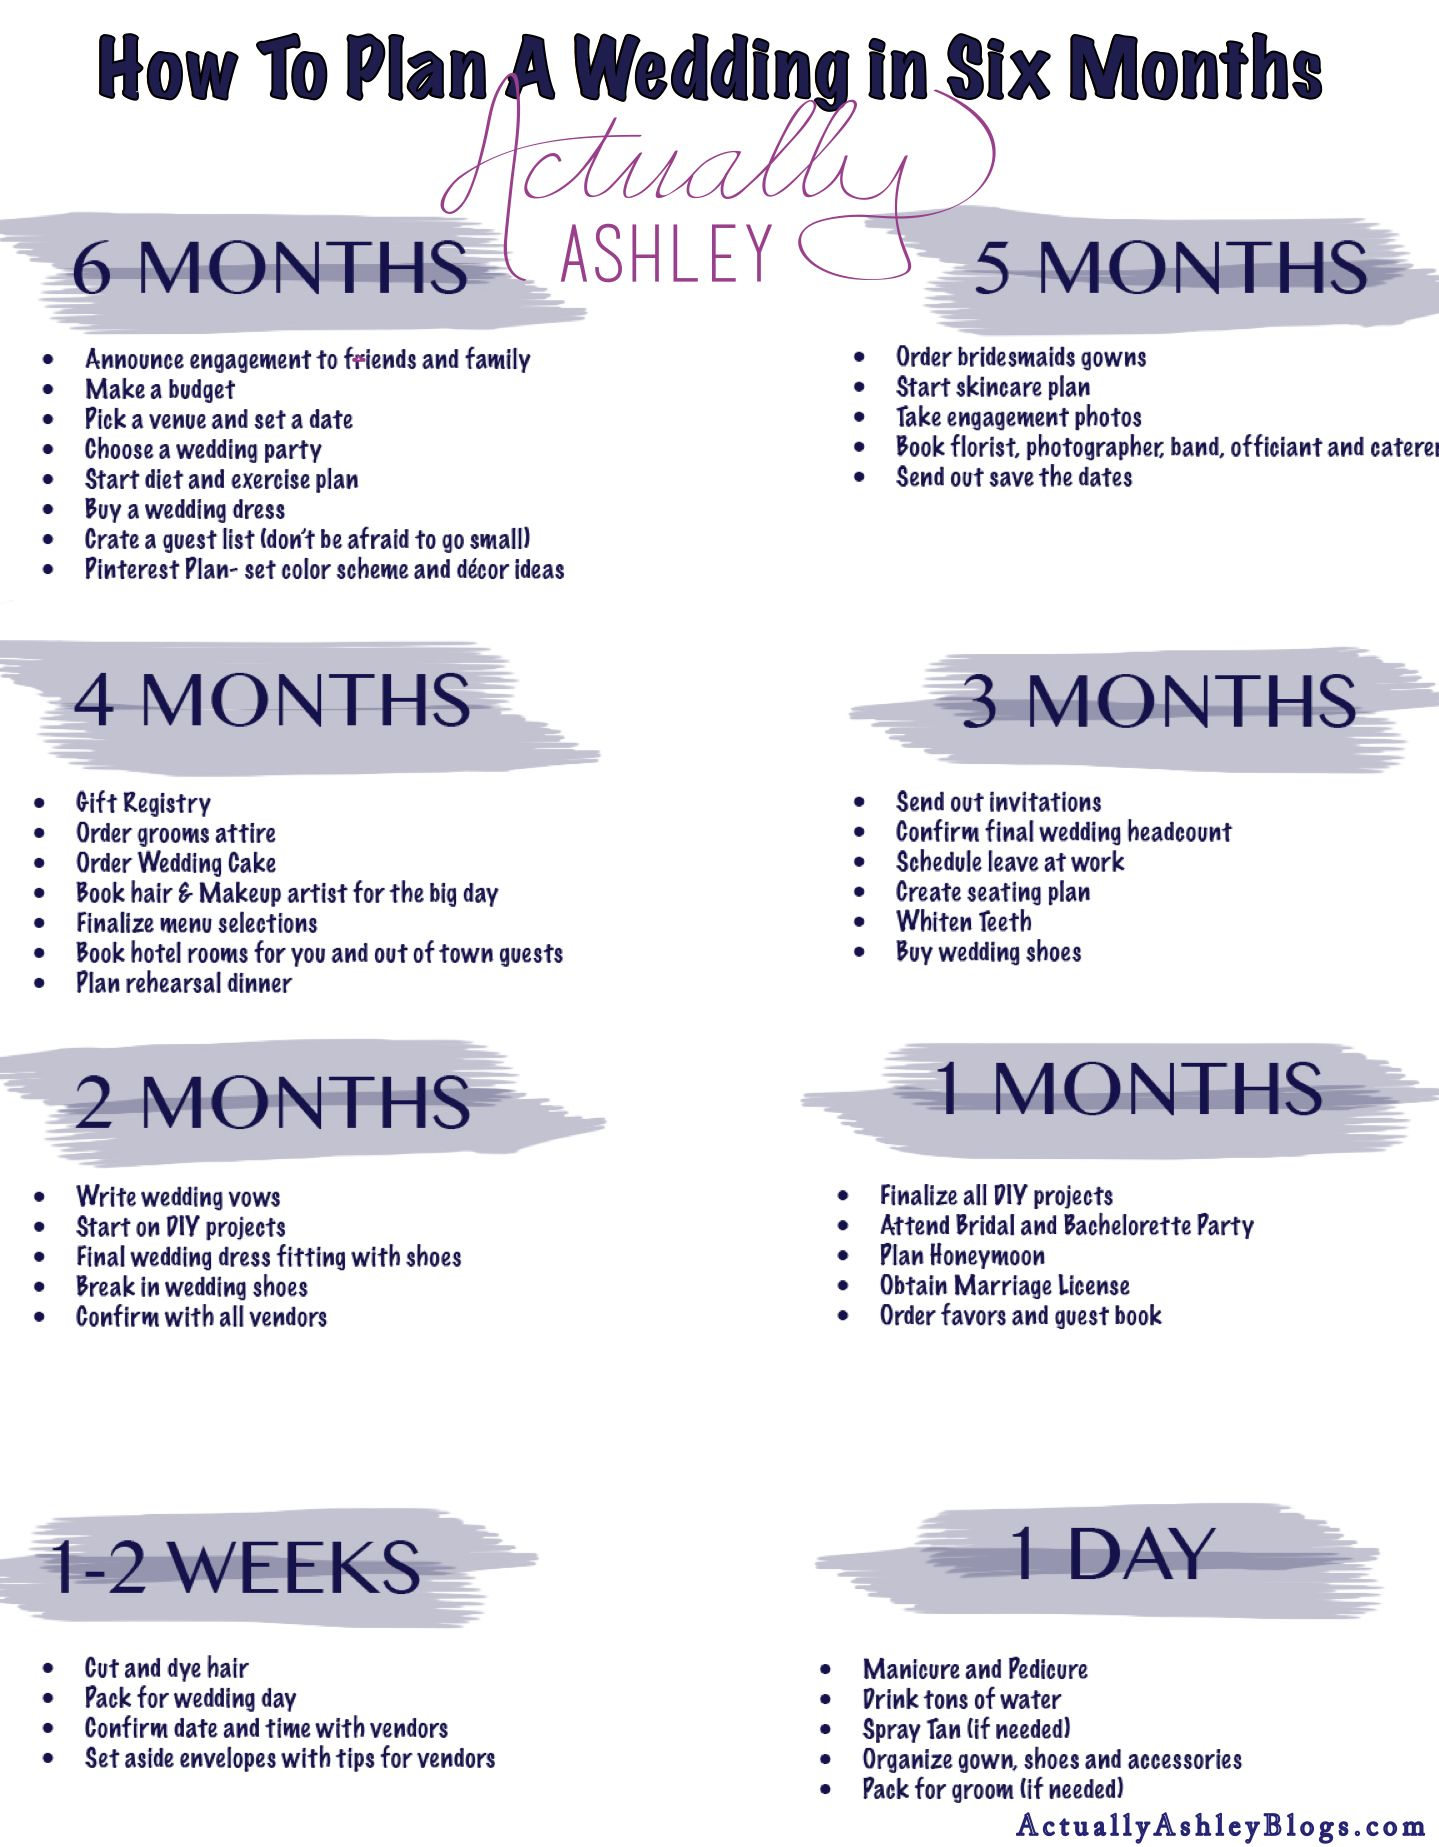 Wedding Timeline Checklist.Wedding Planning How To Plan A Wedding In Six Months Wedding